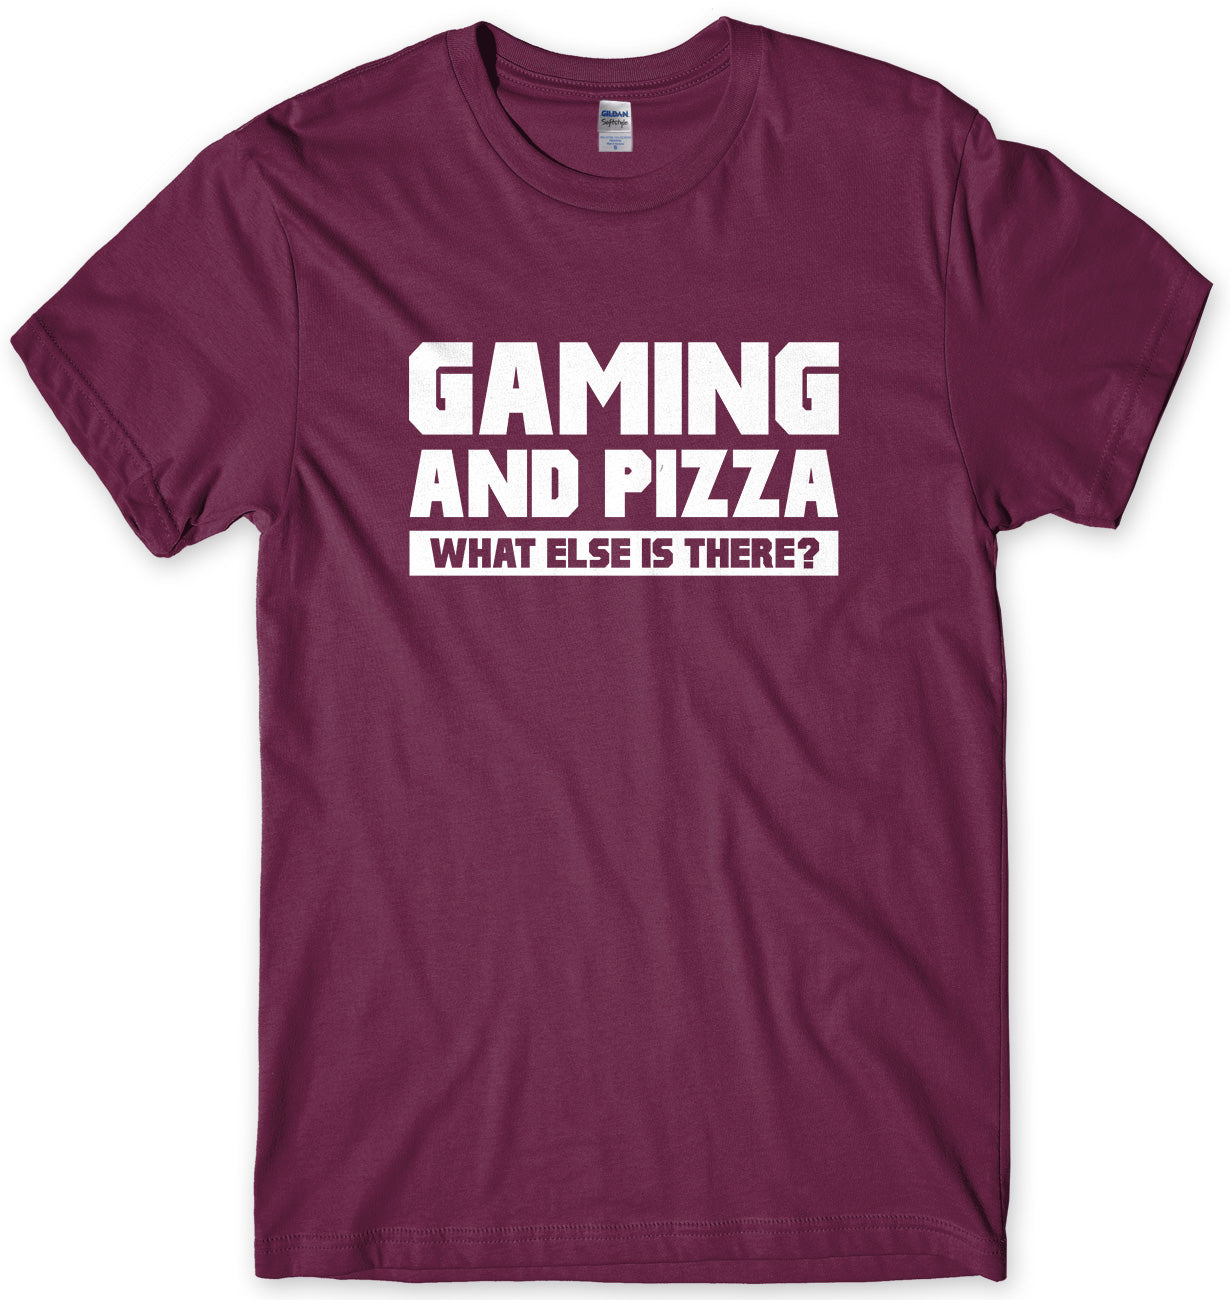 Gaming And Pizza - What Else Is There? Mens T-shirt